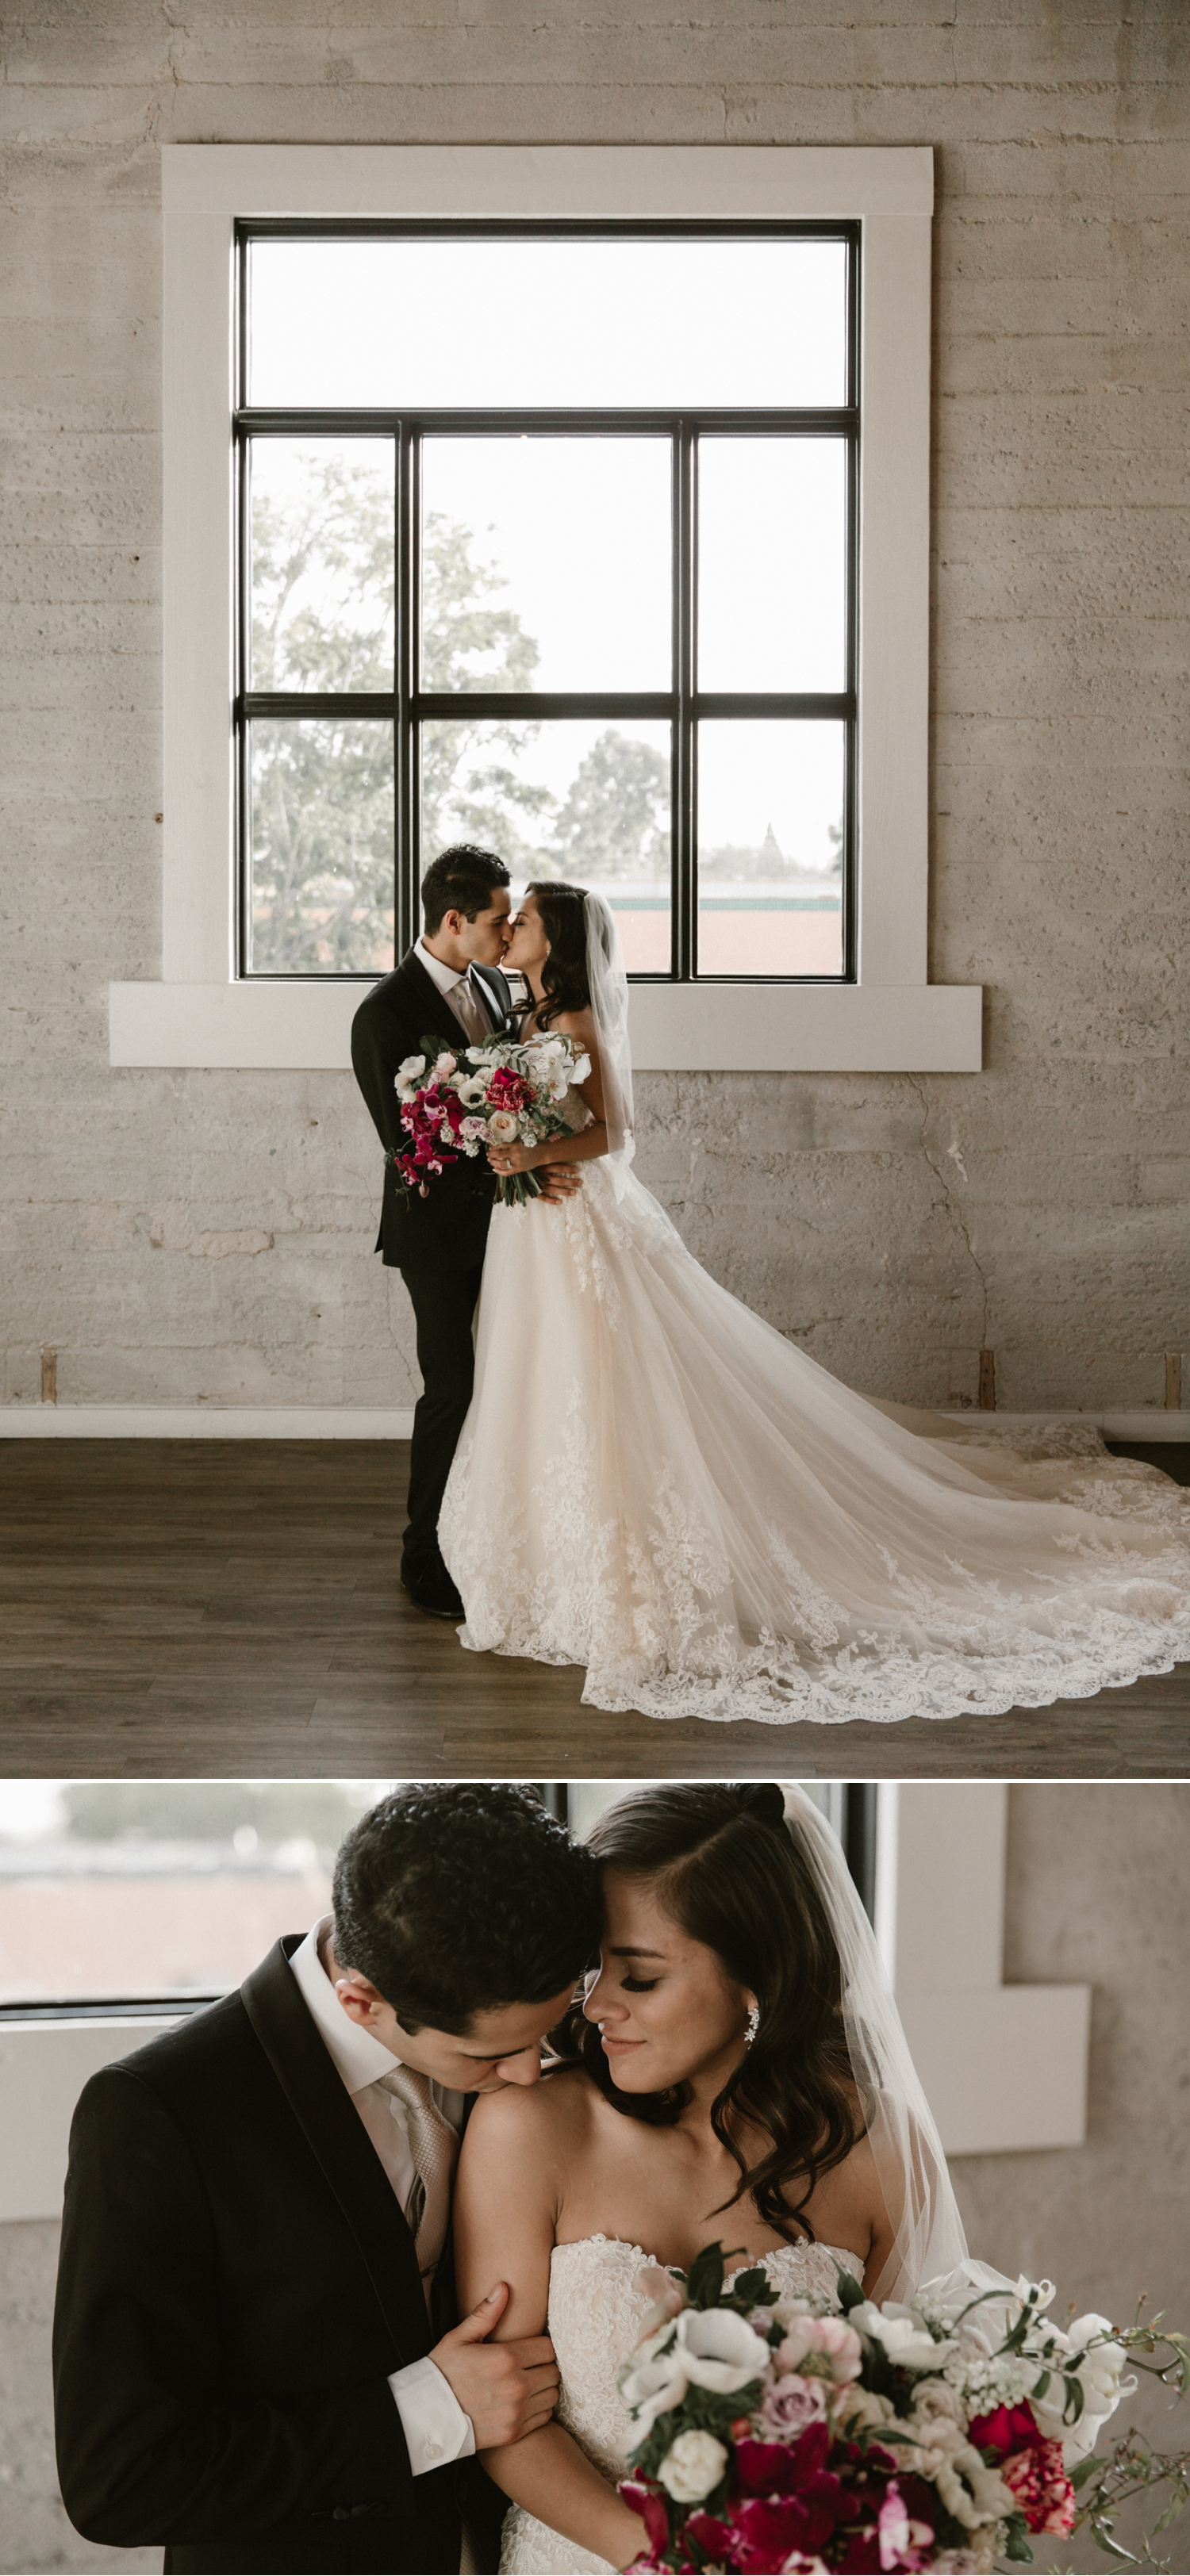 Bride and groom portraits at 1912 wedding in Santa Ana by Paige Nelson